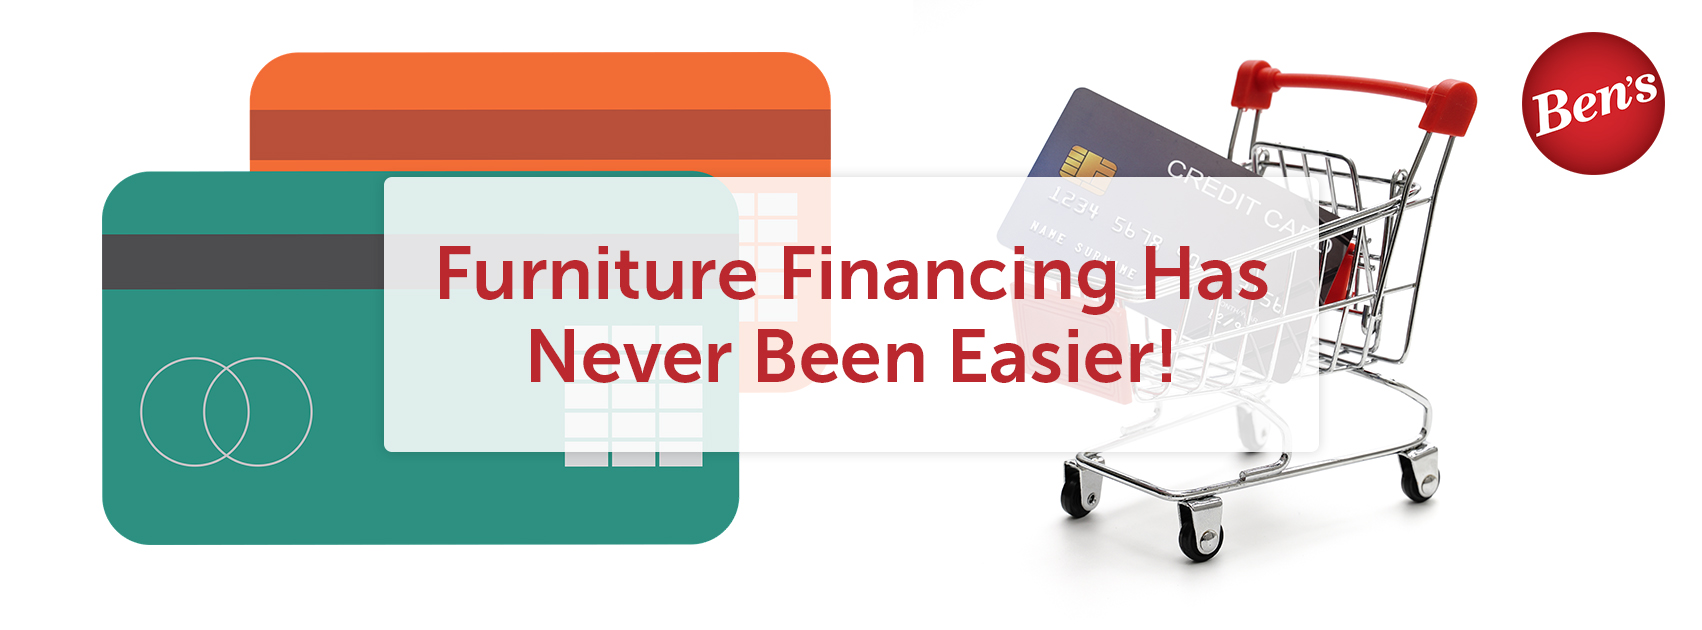 ALT TEXT furniture financing